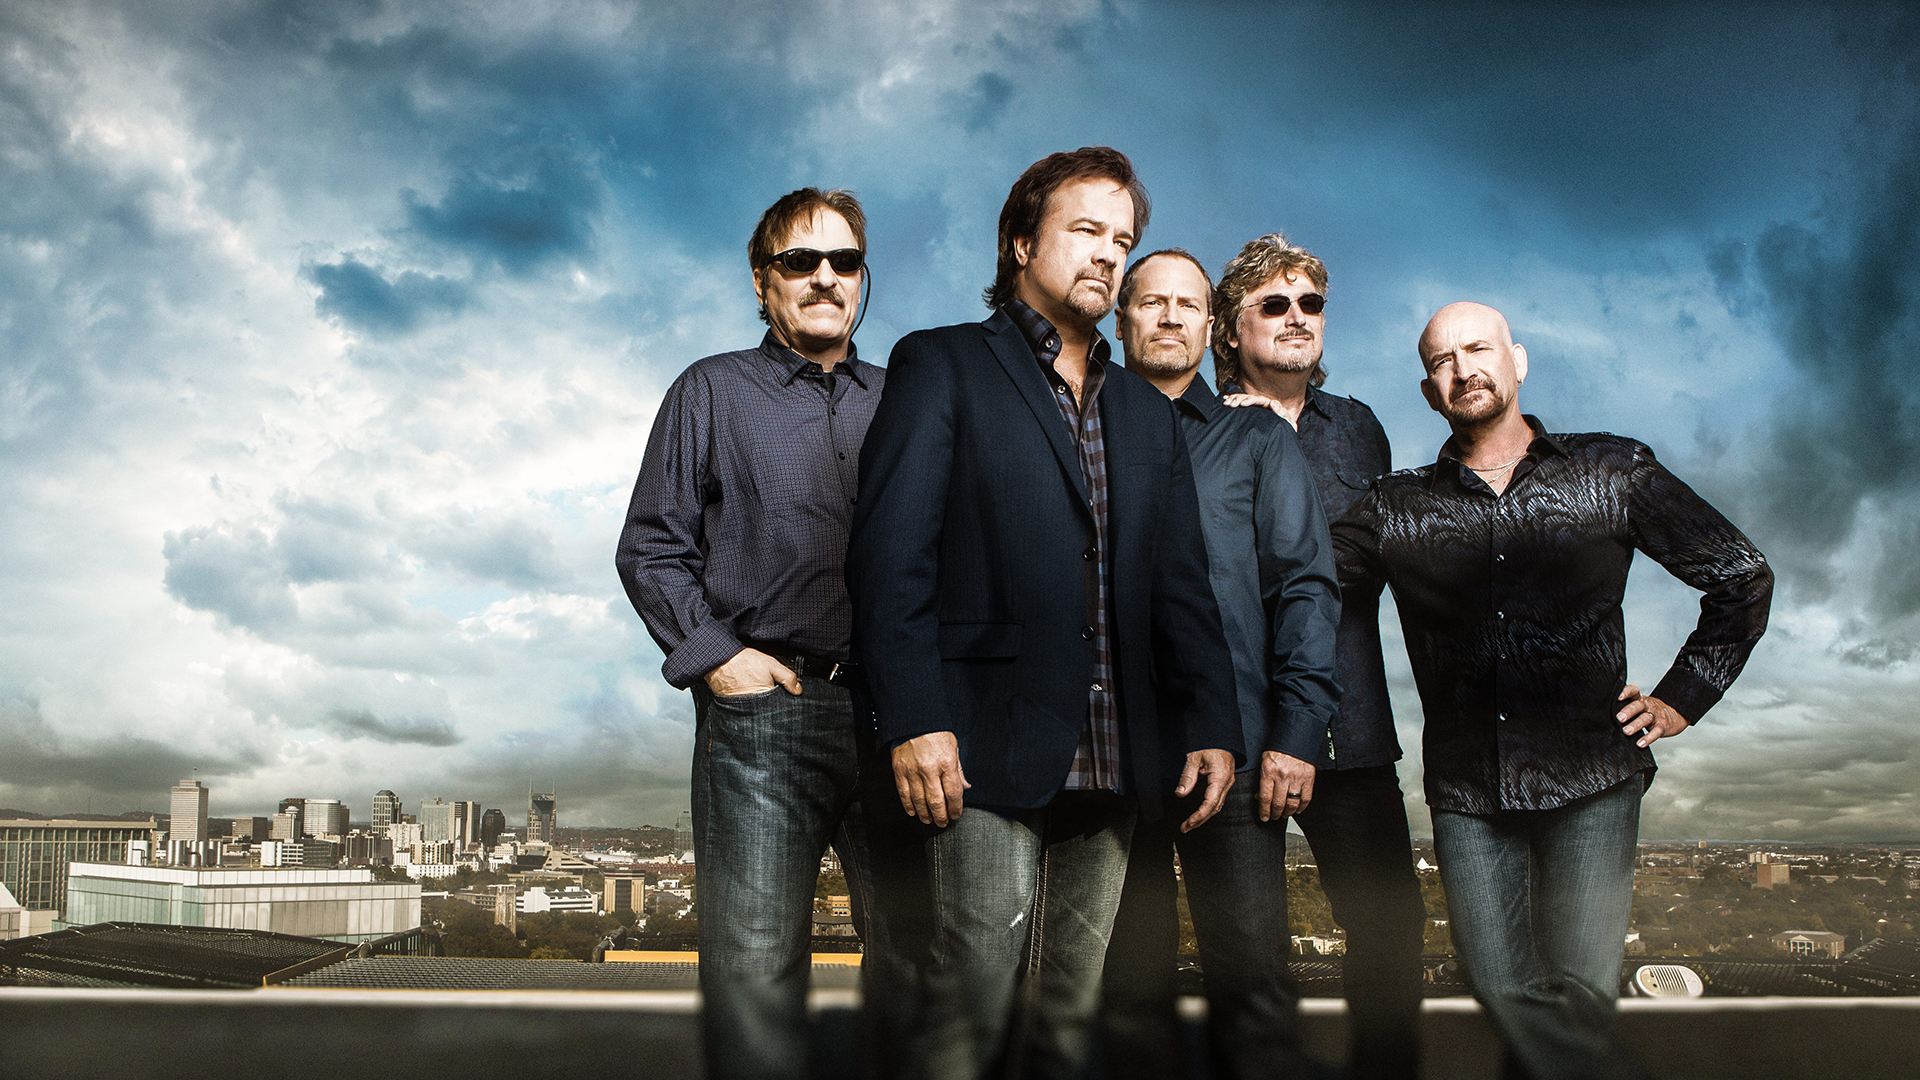 Restless Heart's Larry Stewart on the band's relationship with Texas and his decision to perform for Trump inauguration